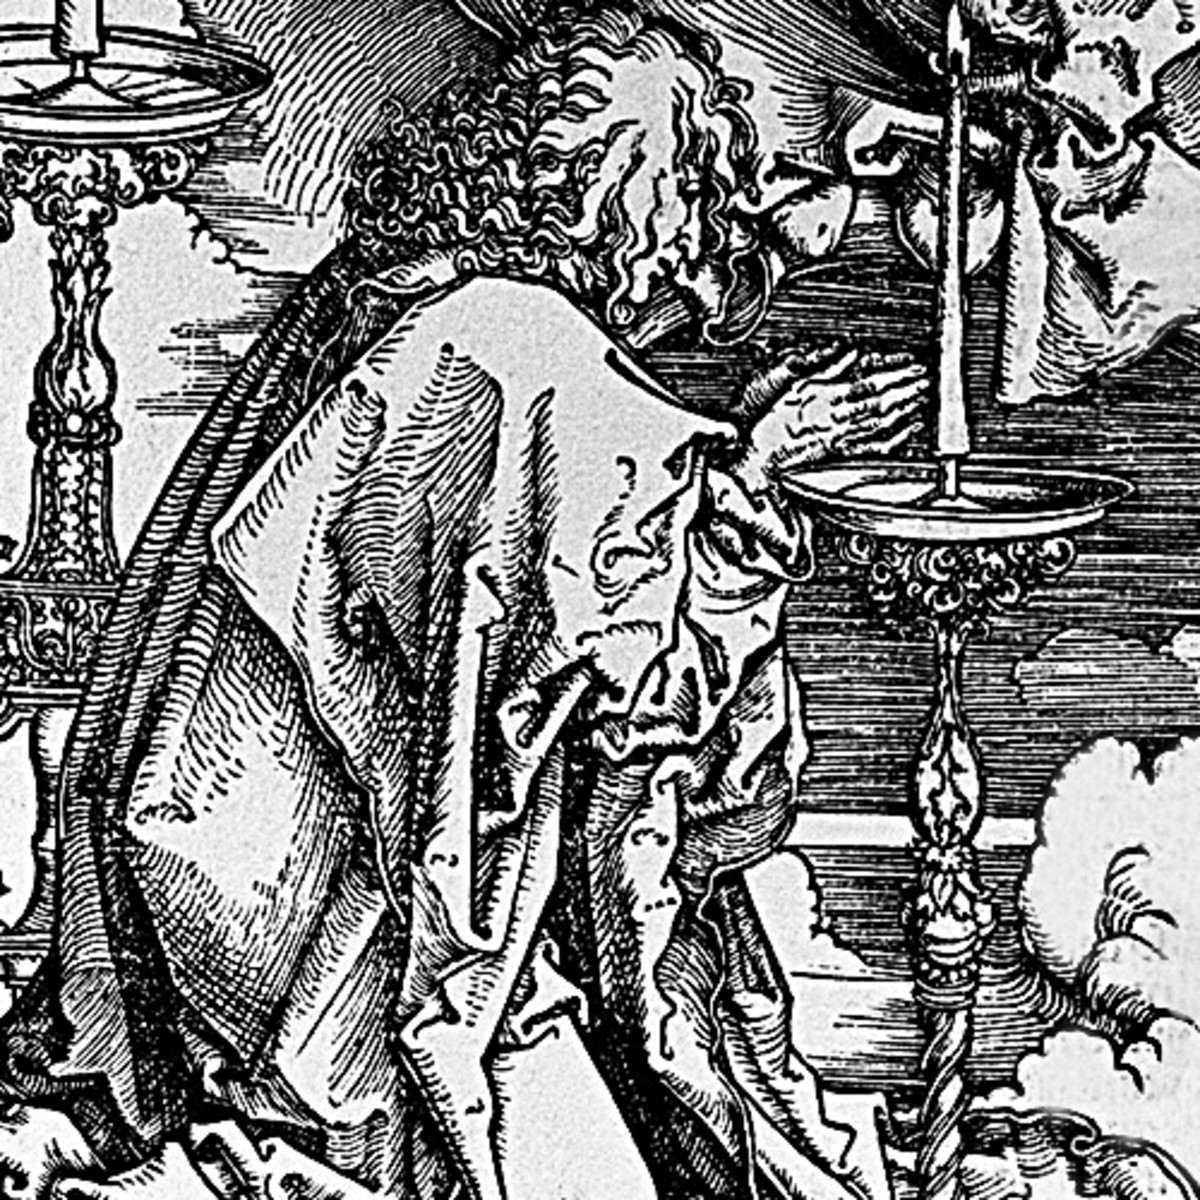 """Here we show another portion of """"St John's Vision of Christ and the Seven Candlesticks"""" by Albrecht Durer - this this image, we see St John kneeling in veneration before Christ."""